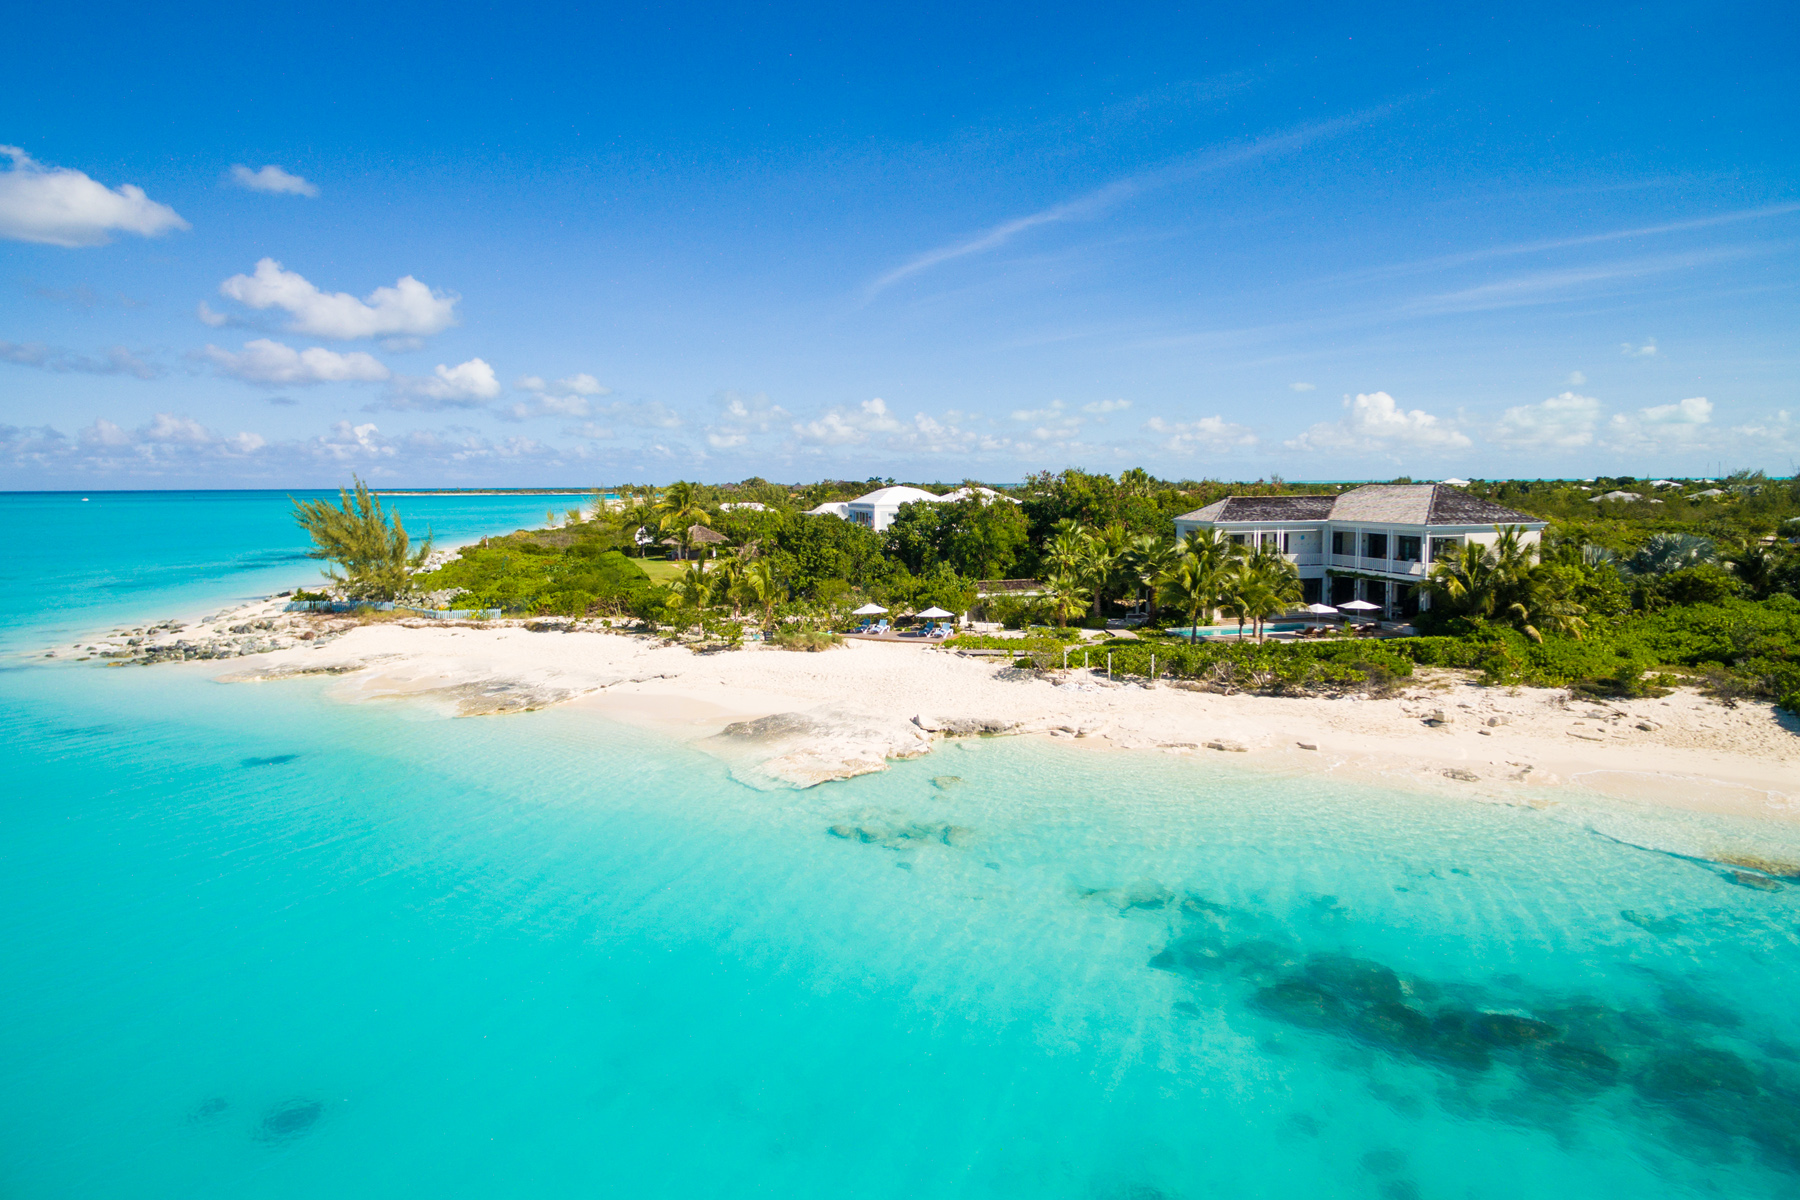 Maison unifamiliale pour l Vente à Saving Grace - Luxurious Beachfront Villa Grace Bay, Providenciales TCI BWI Îles Turques Et Caïques